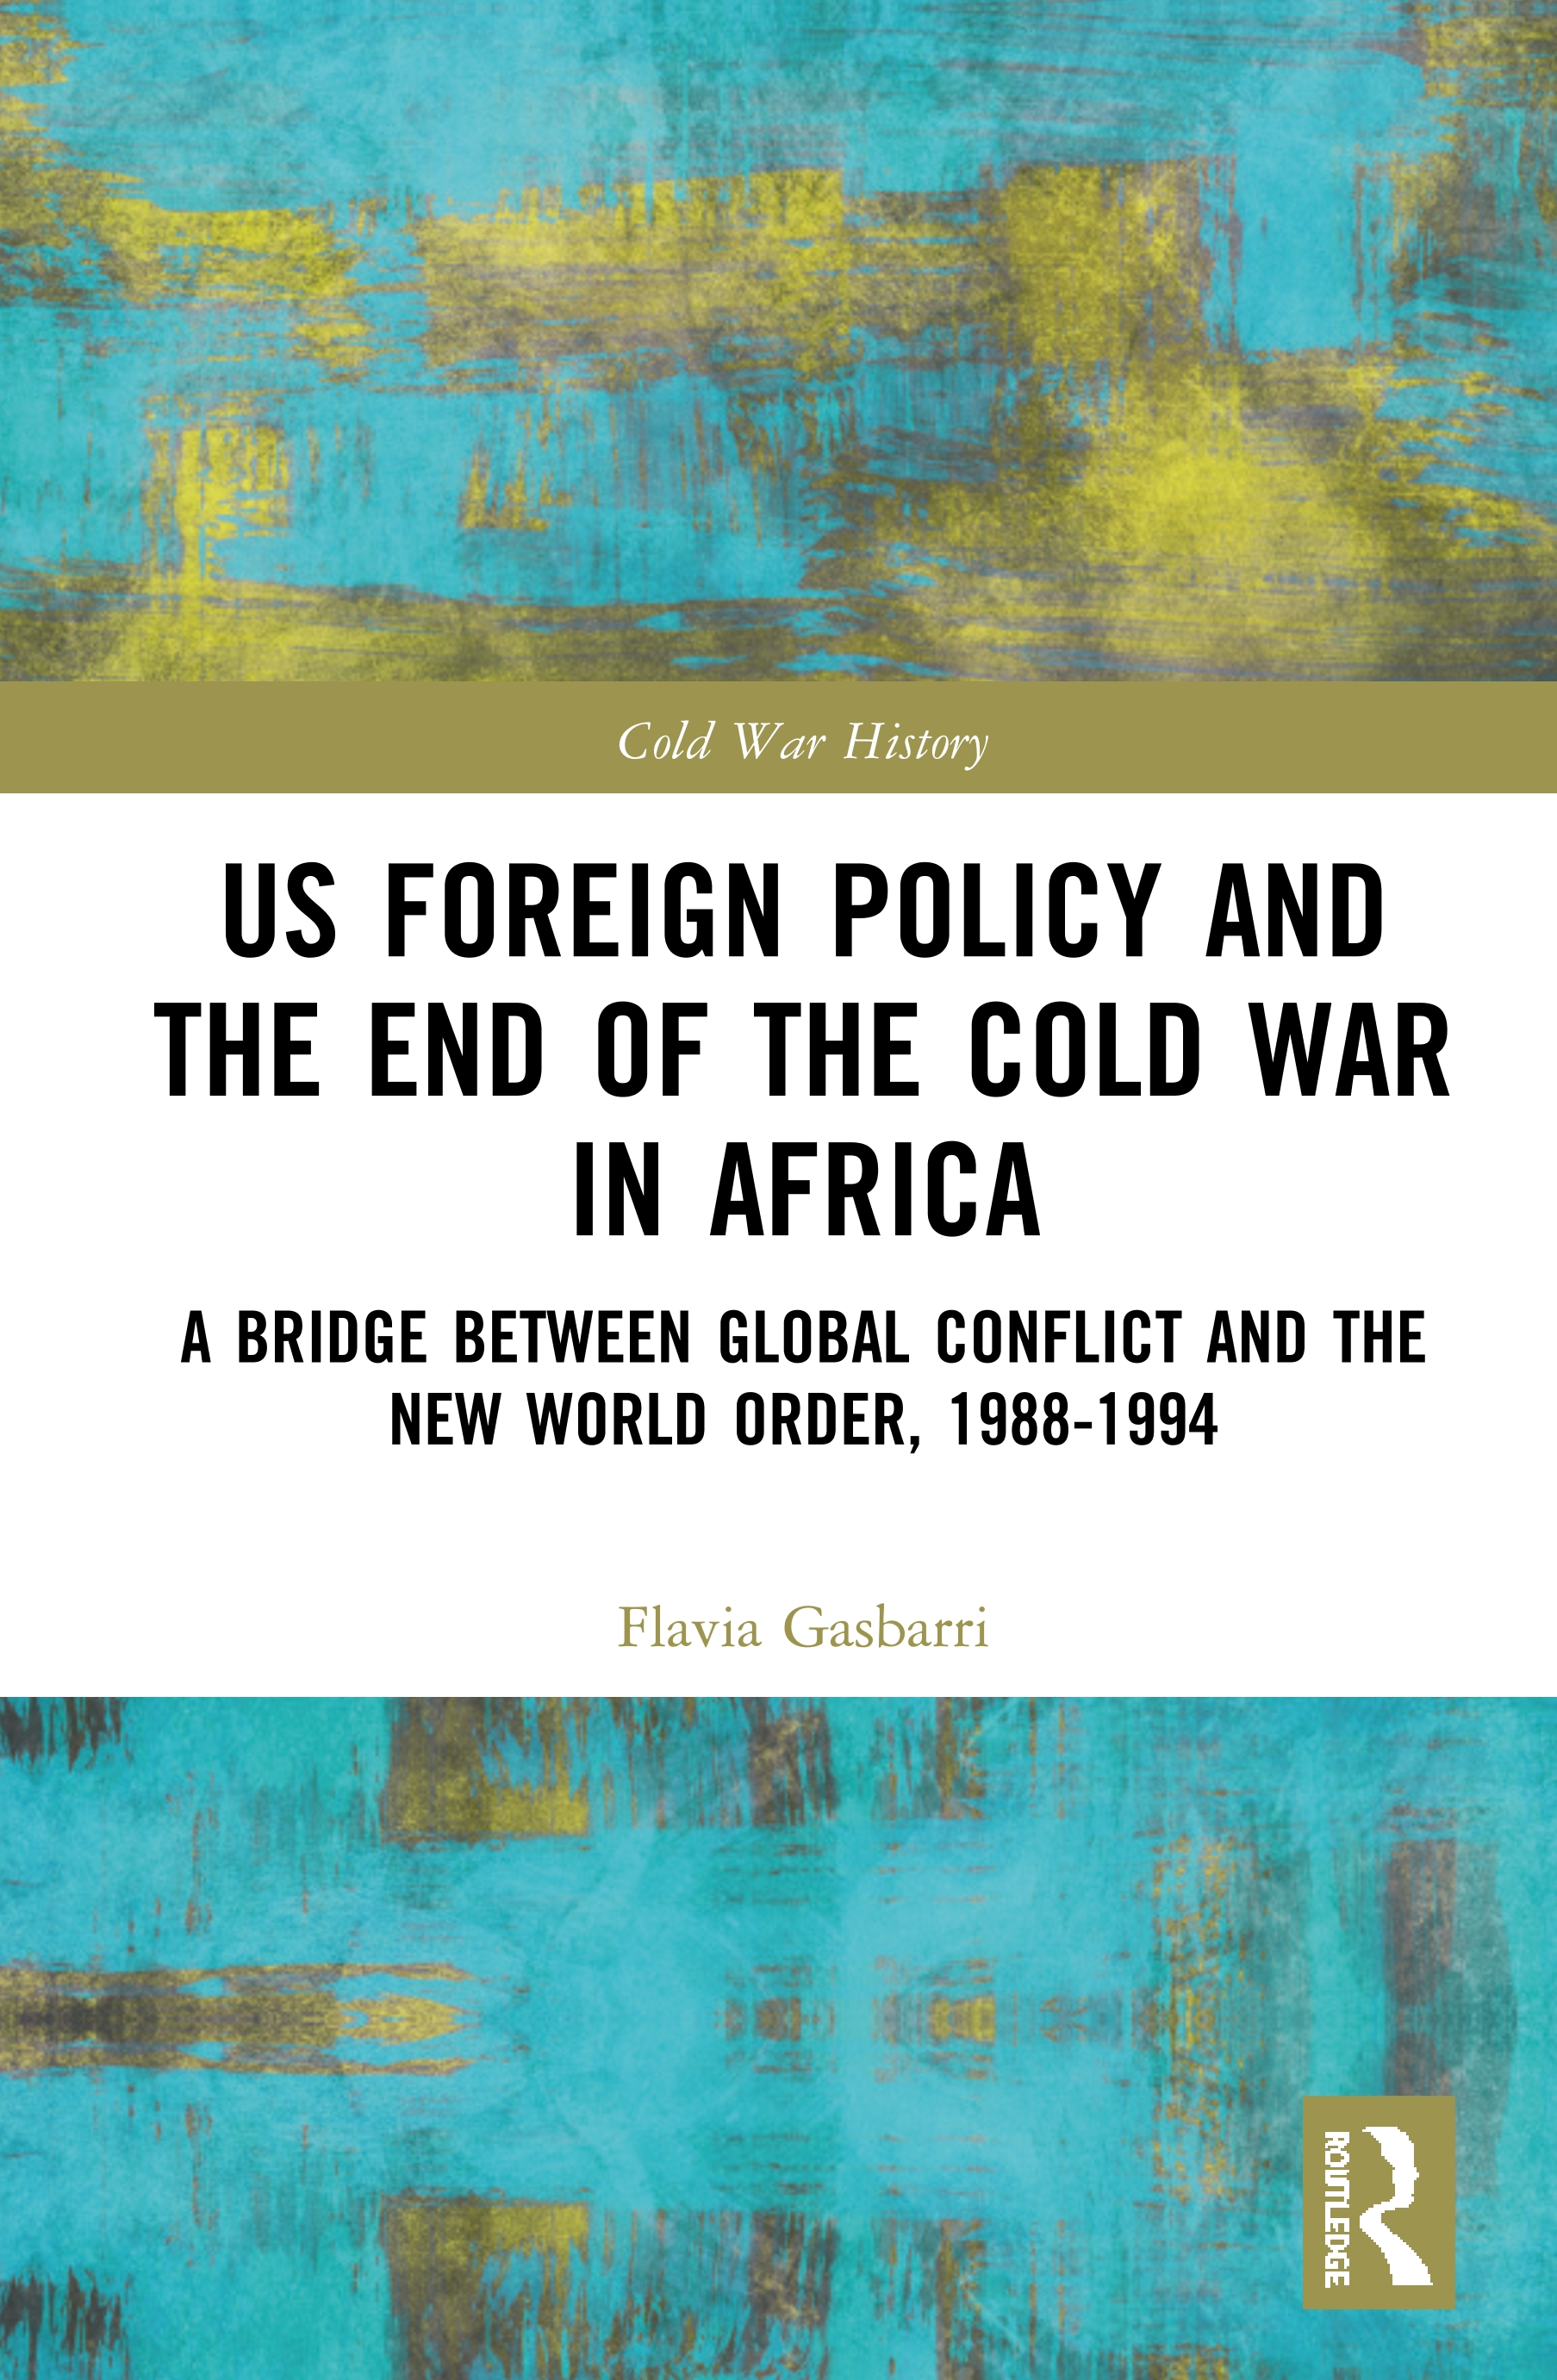 US Foreign Policy and the End of the Cold War in Africa: A Bridge between Global Conflict and the New World Order, 1988-1994 book cover